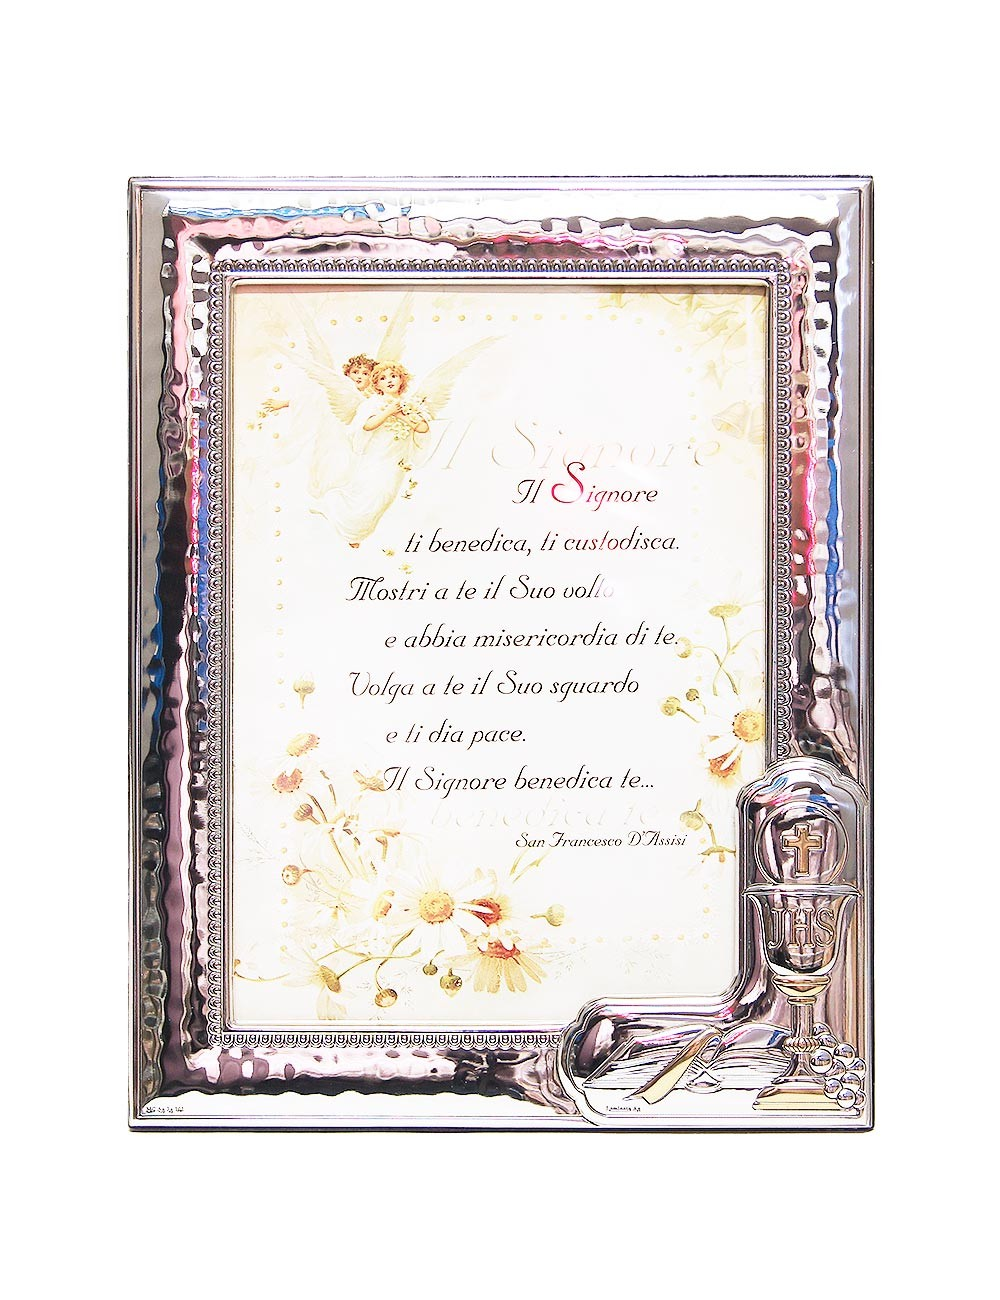 Photo Frame Confirmation - in Silver - 9 x 13 cm - Maison Halleux Pro